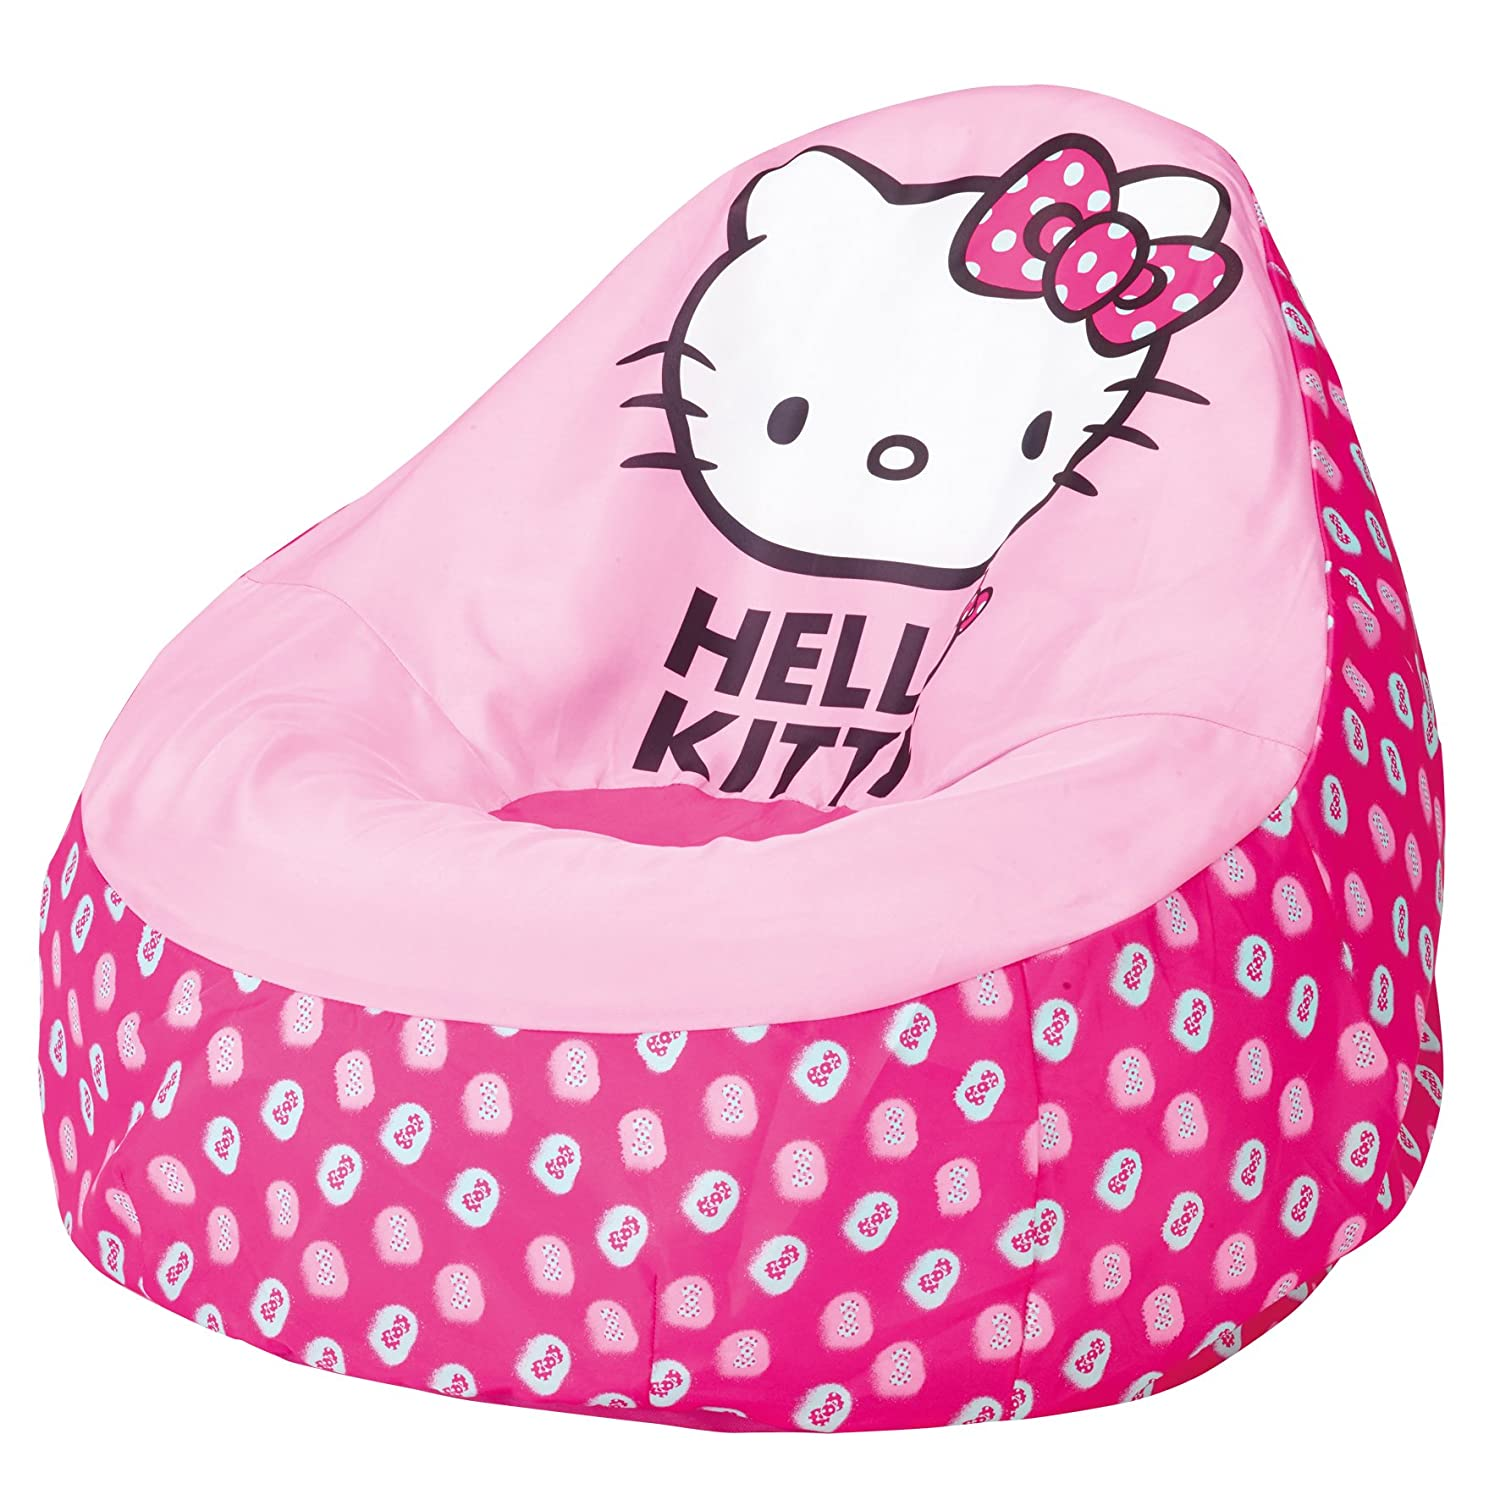 Hello kitty chair - Hello Kitty Chair 5